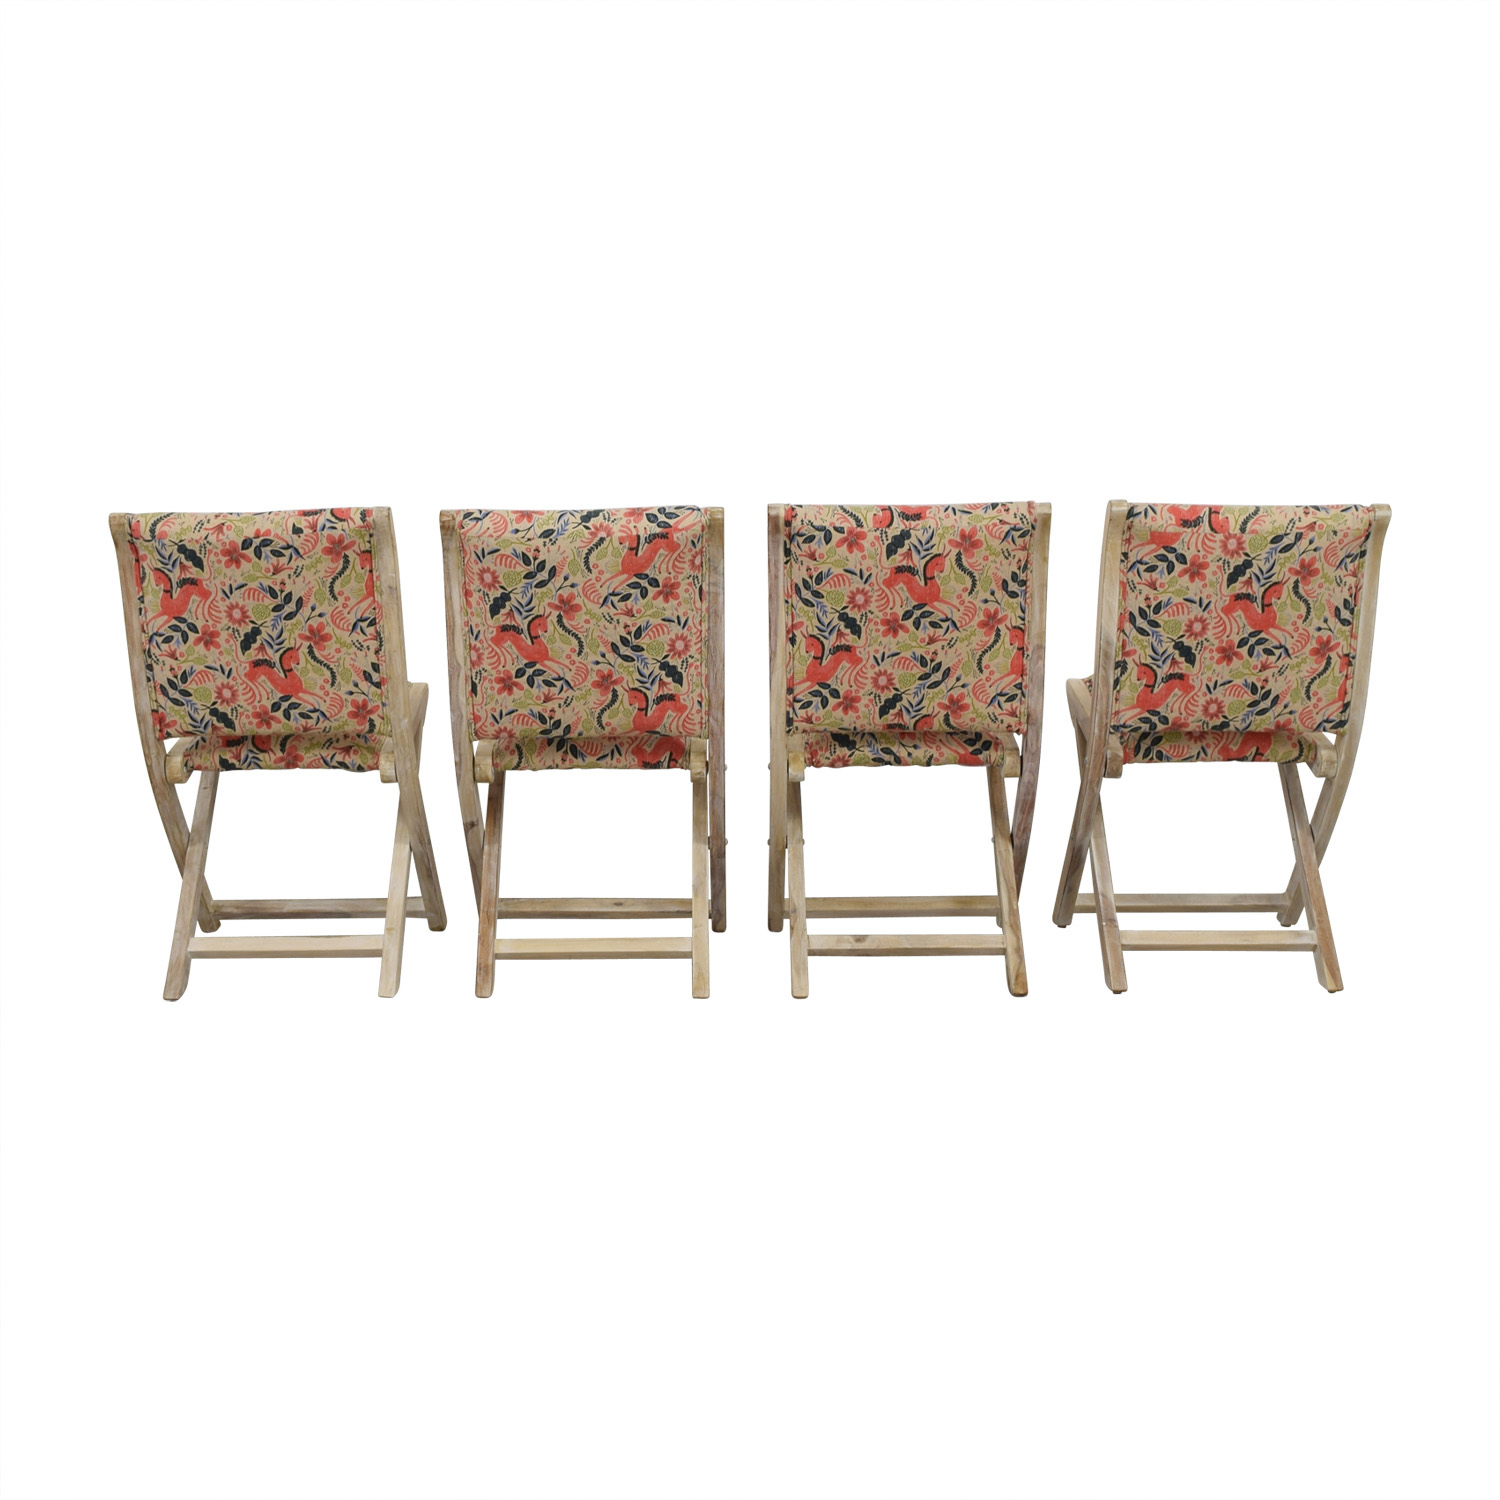 Anthropologie Anthropologie Rustic Multi-Colored Unicorn Folding Chairs used